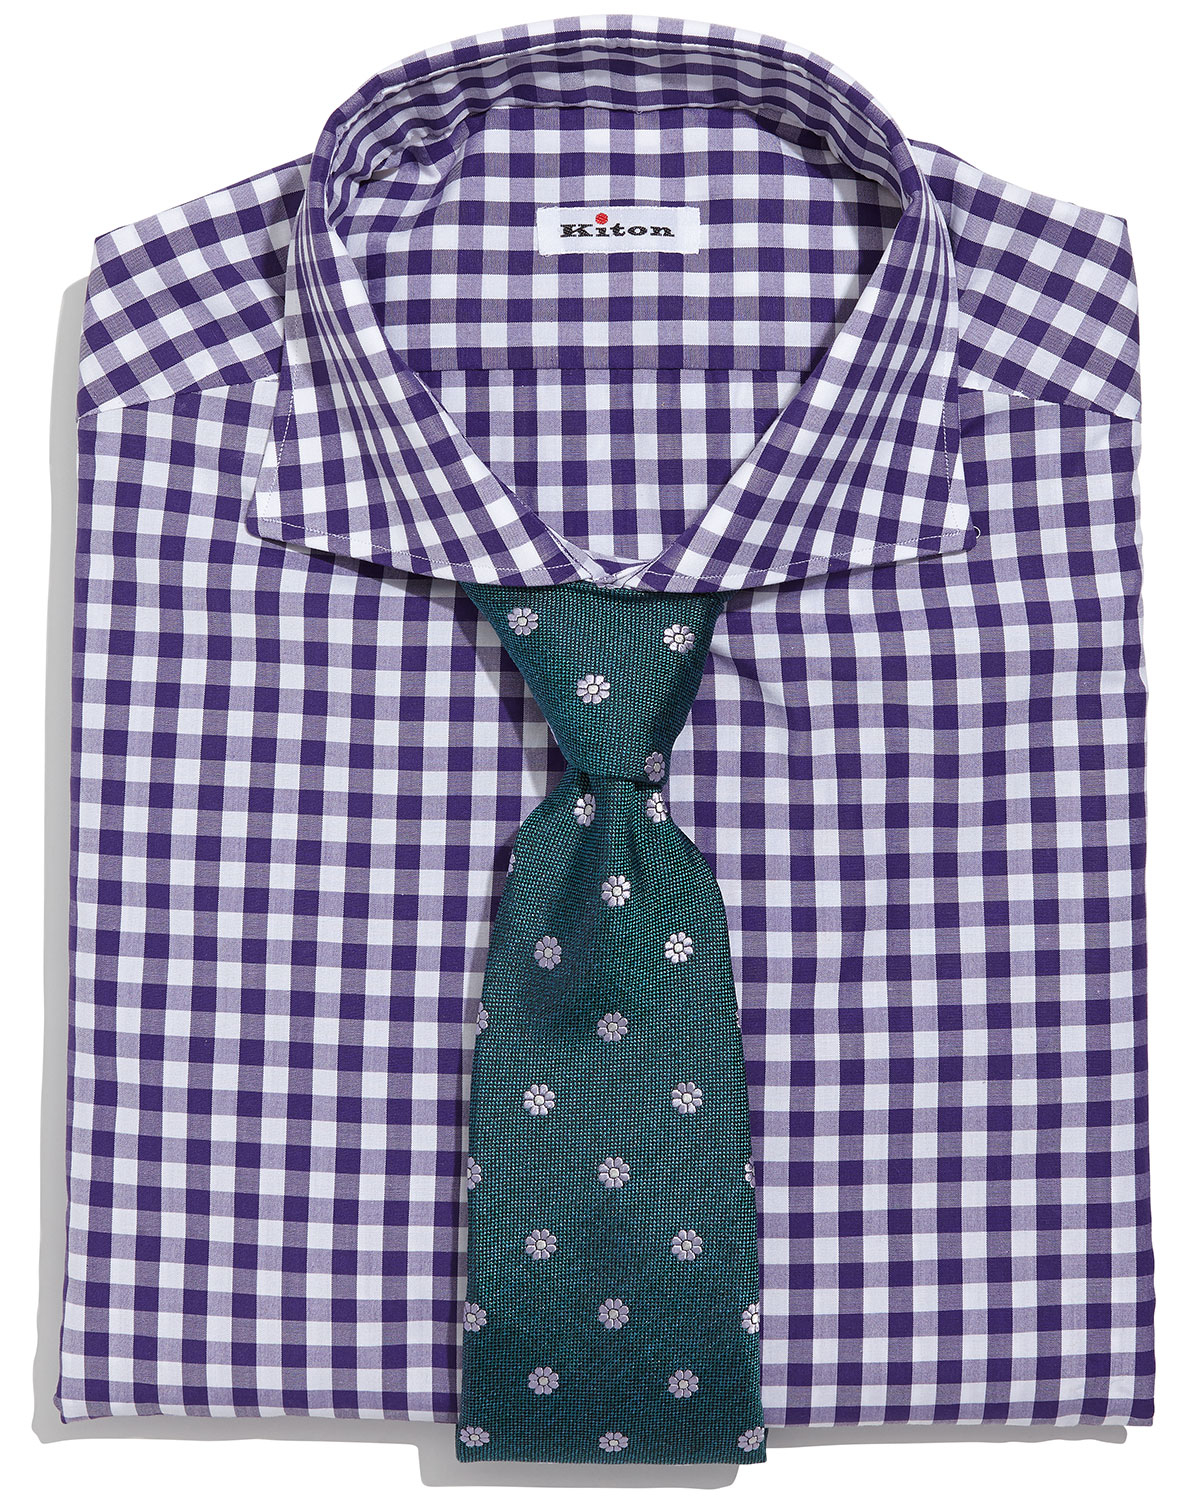 Lyst Kiton Gingham Check Dress Shirt In Purple For Men